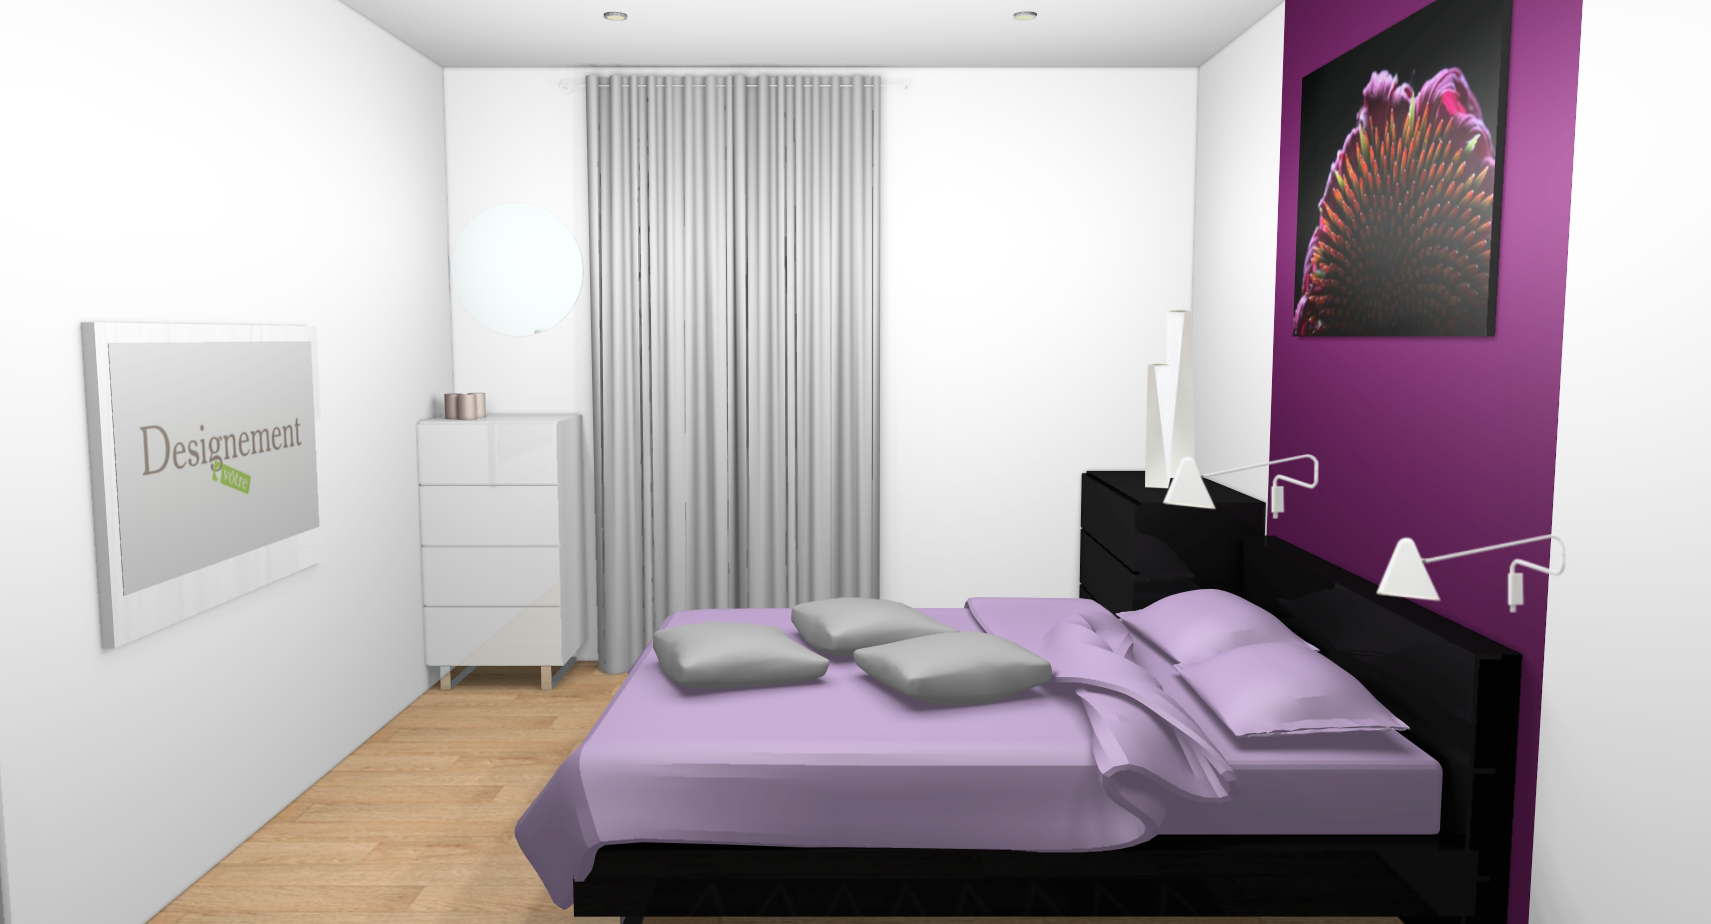 D coration chambre prune exemples d 39 am nagements for Exemple de decoration de chambre adulte